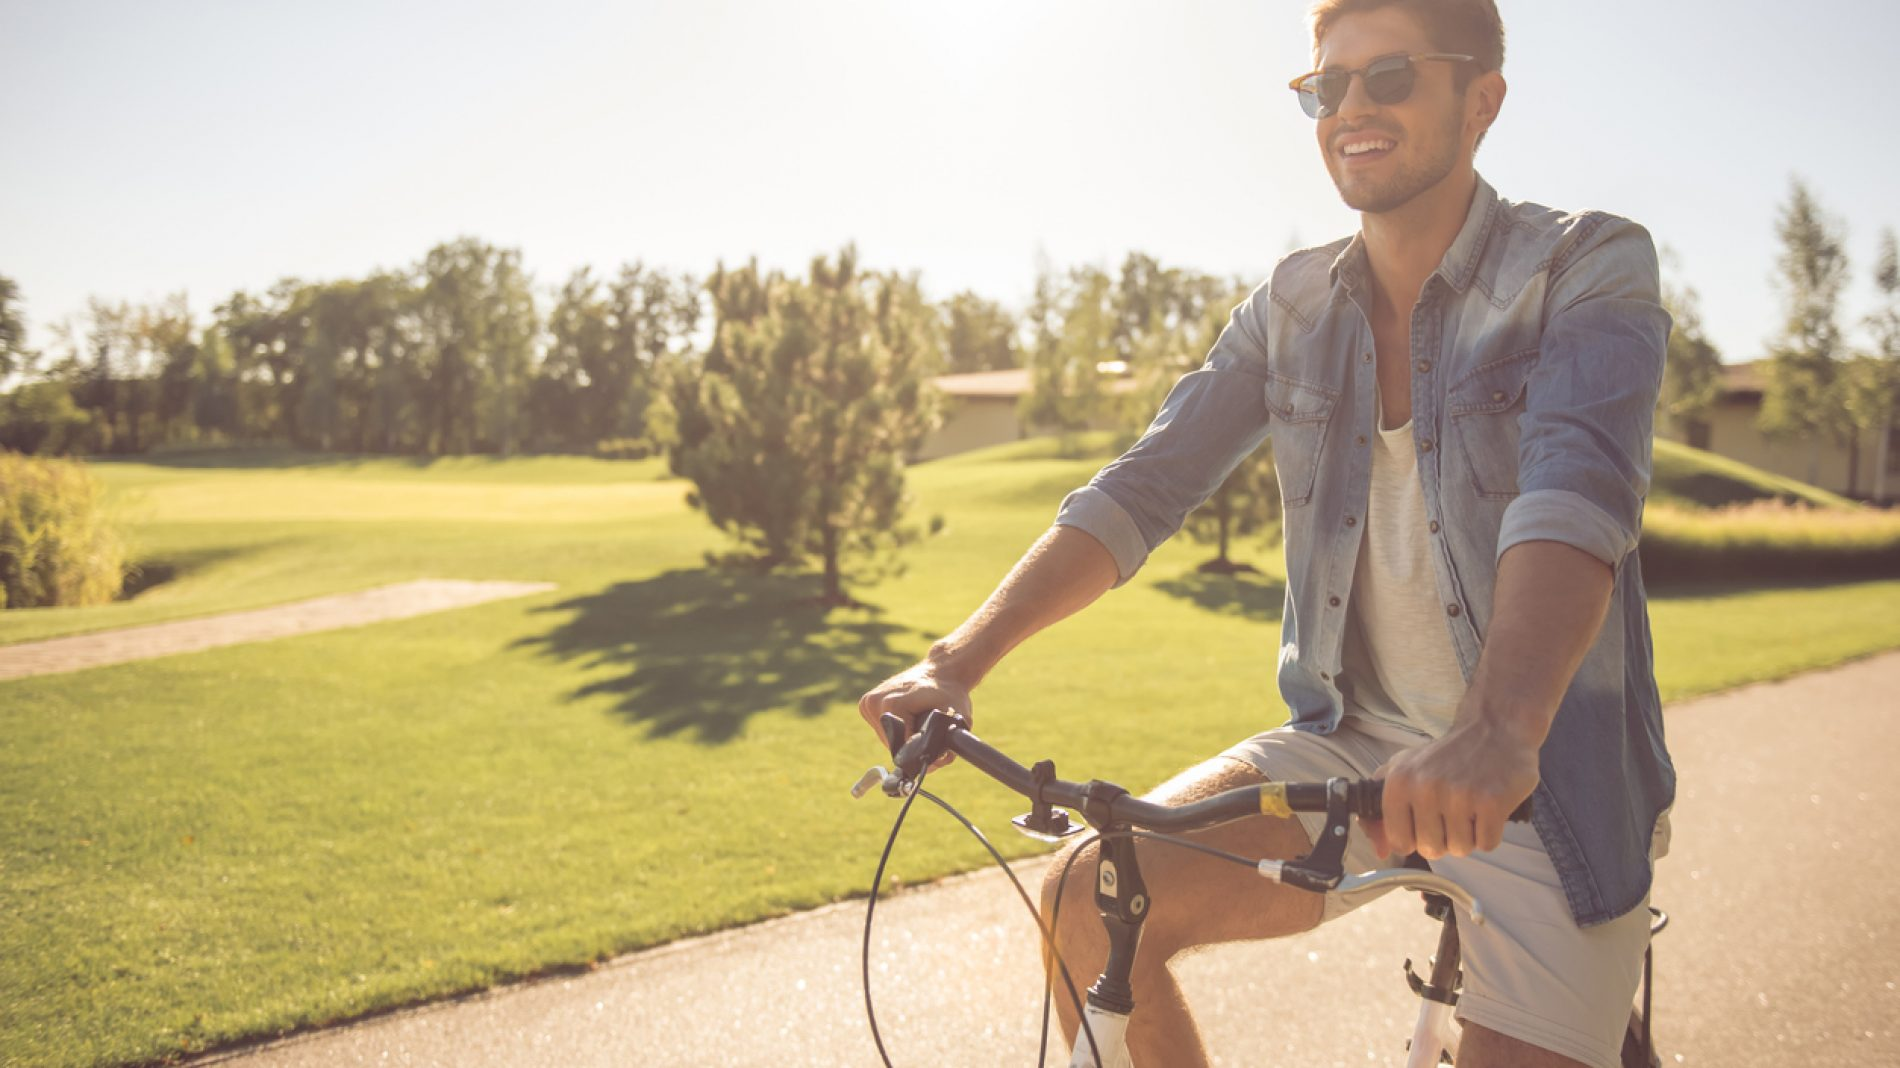 Young man on bicycle